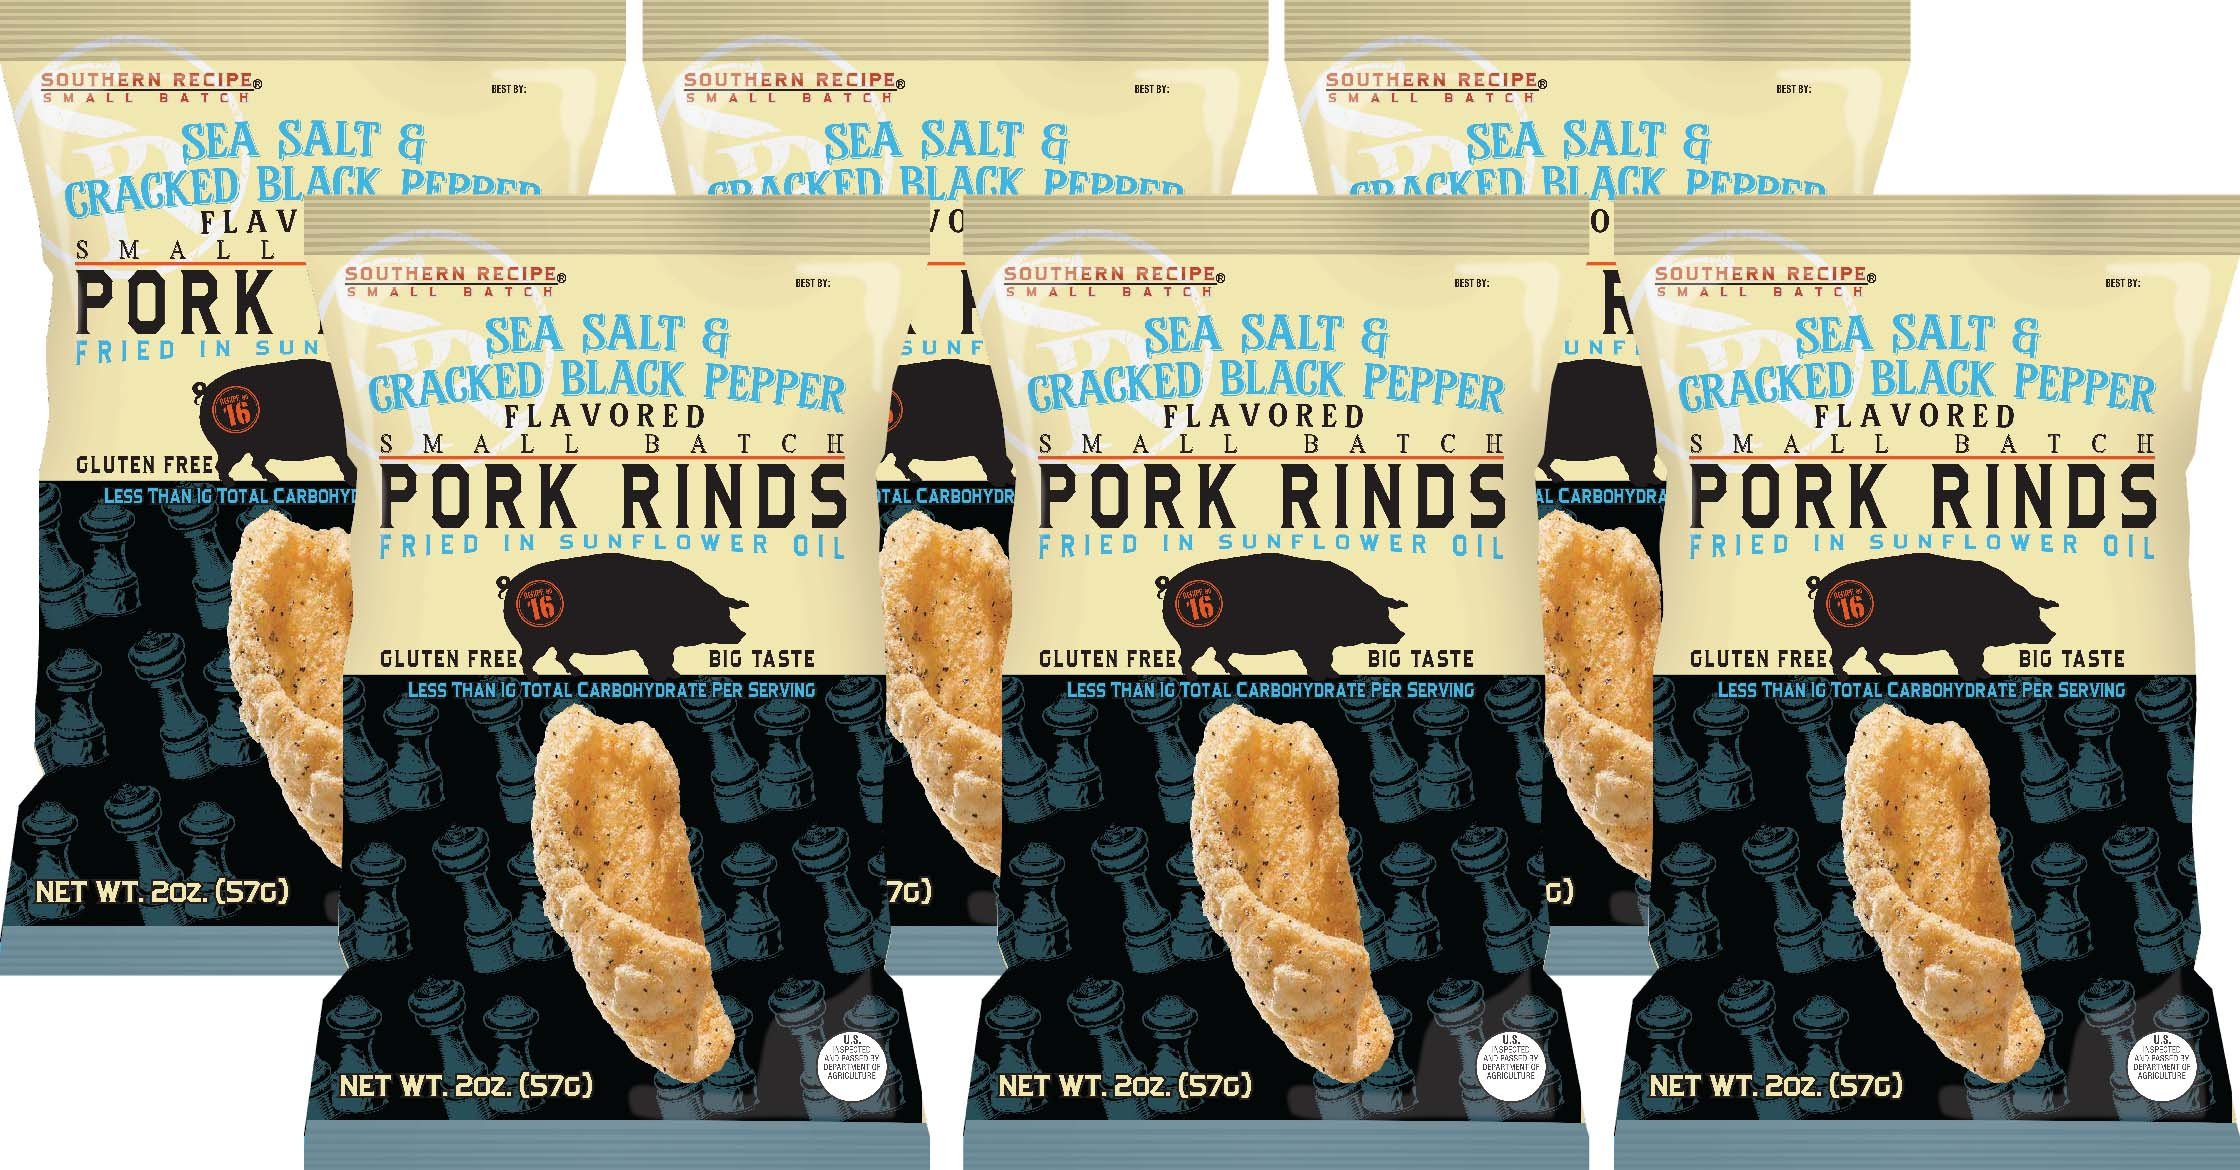 Southern Recipe Small Batch Classic Pork Rinds, Sea Salt & Cracked Black Pepper, 2 Ounce Bag (Pack of 6) by Southern Recipe (Image #3)